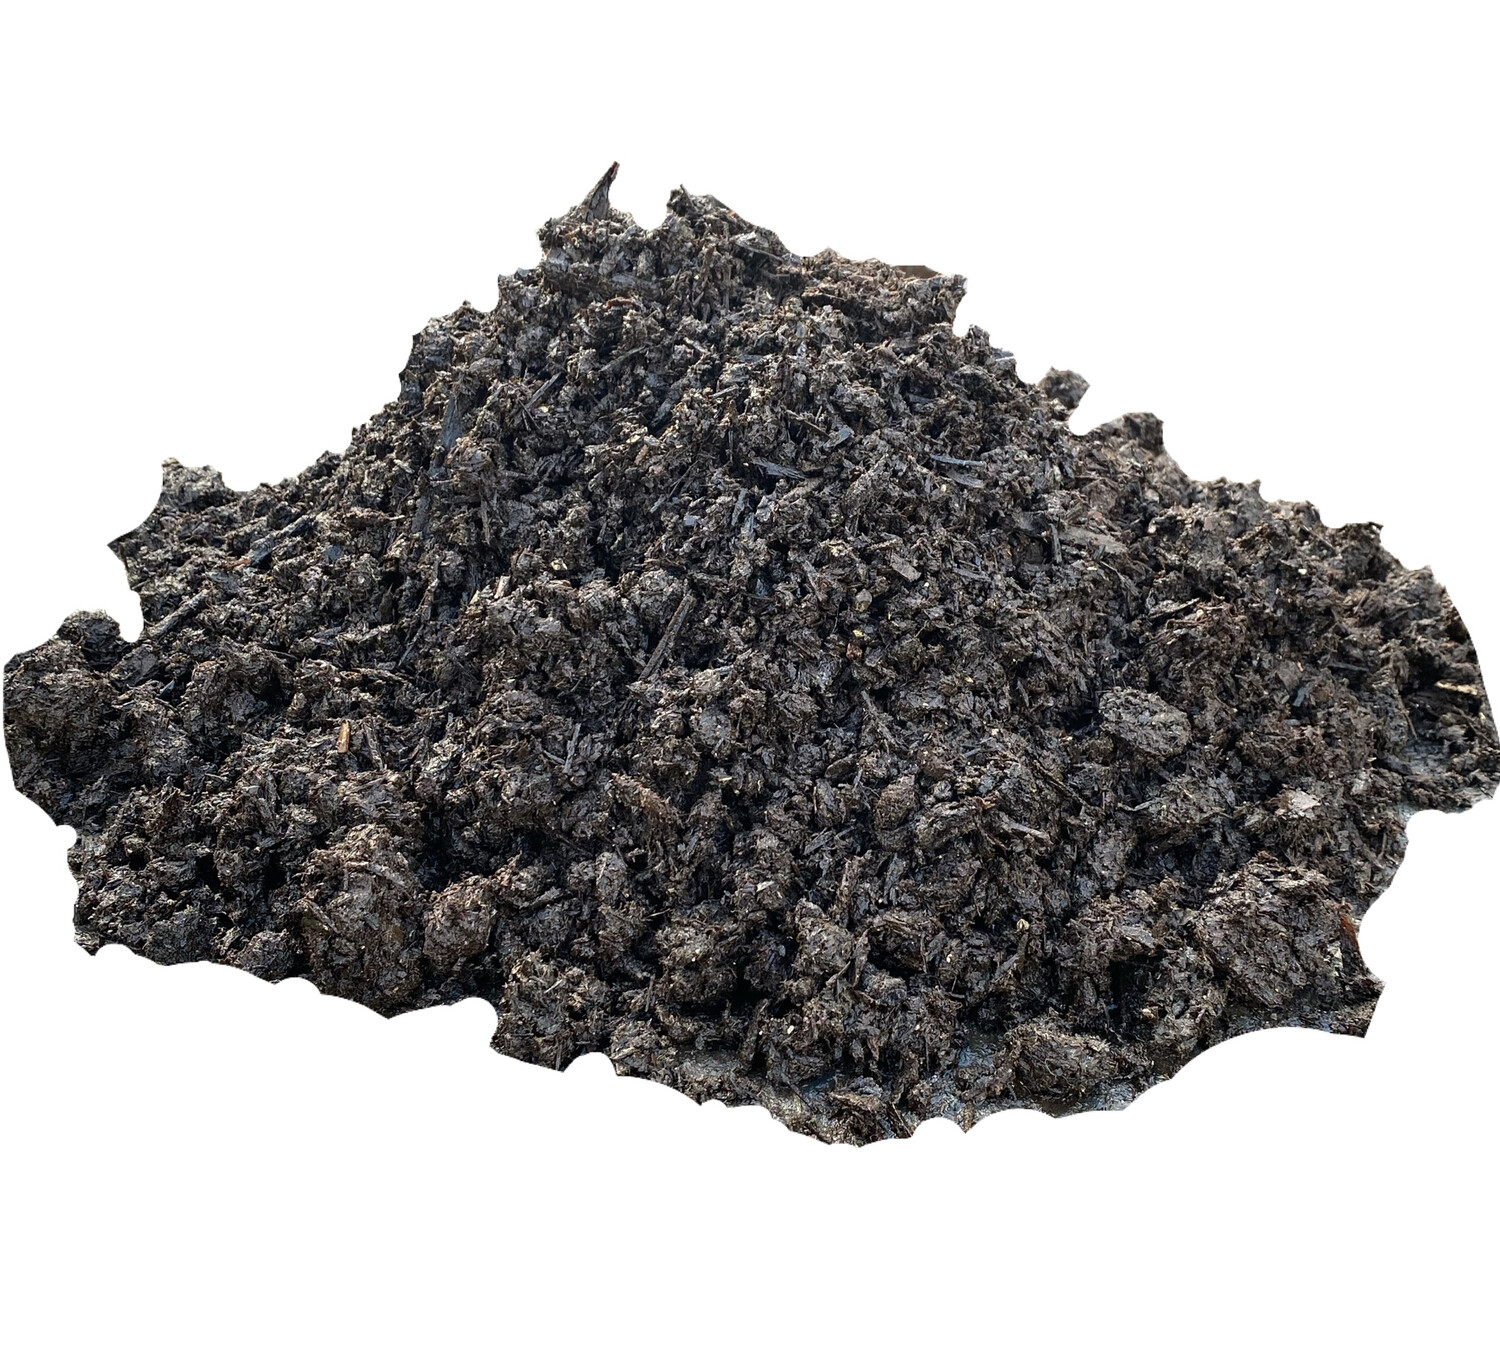 Premium Rotted Manure- Loose